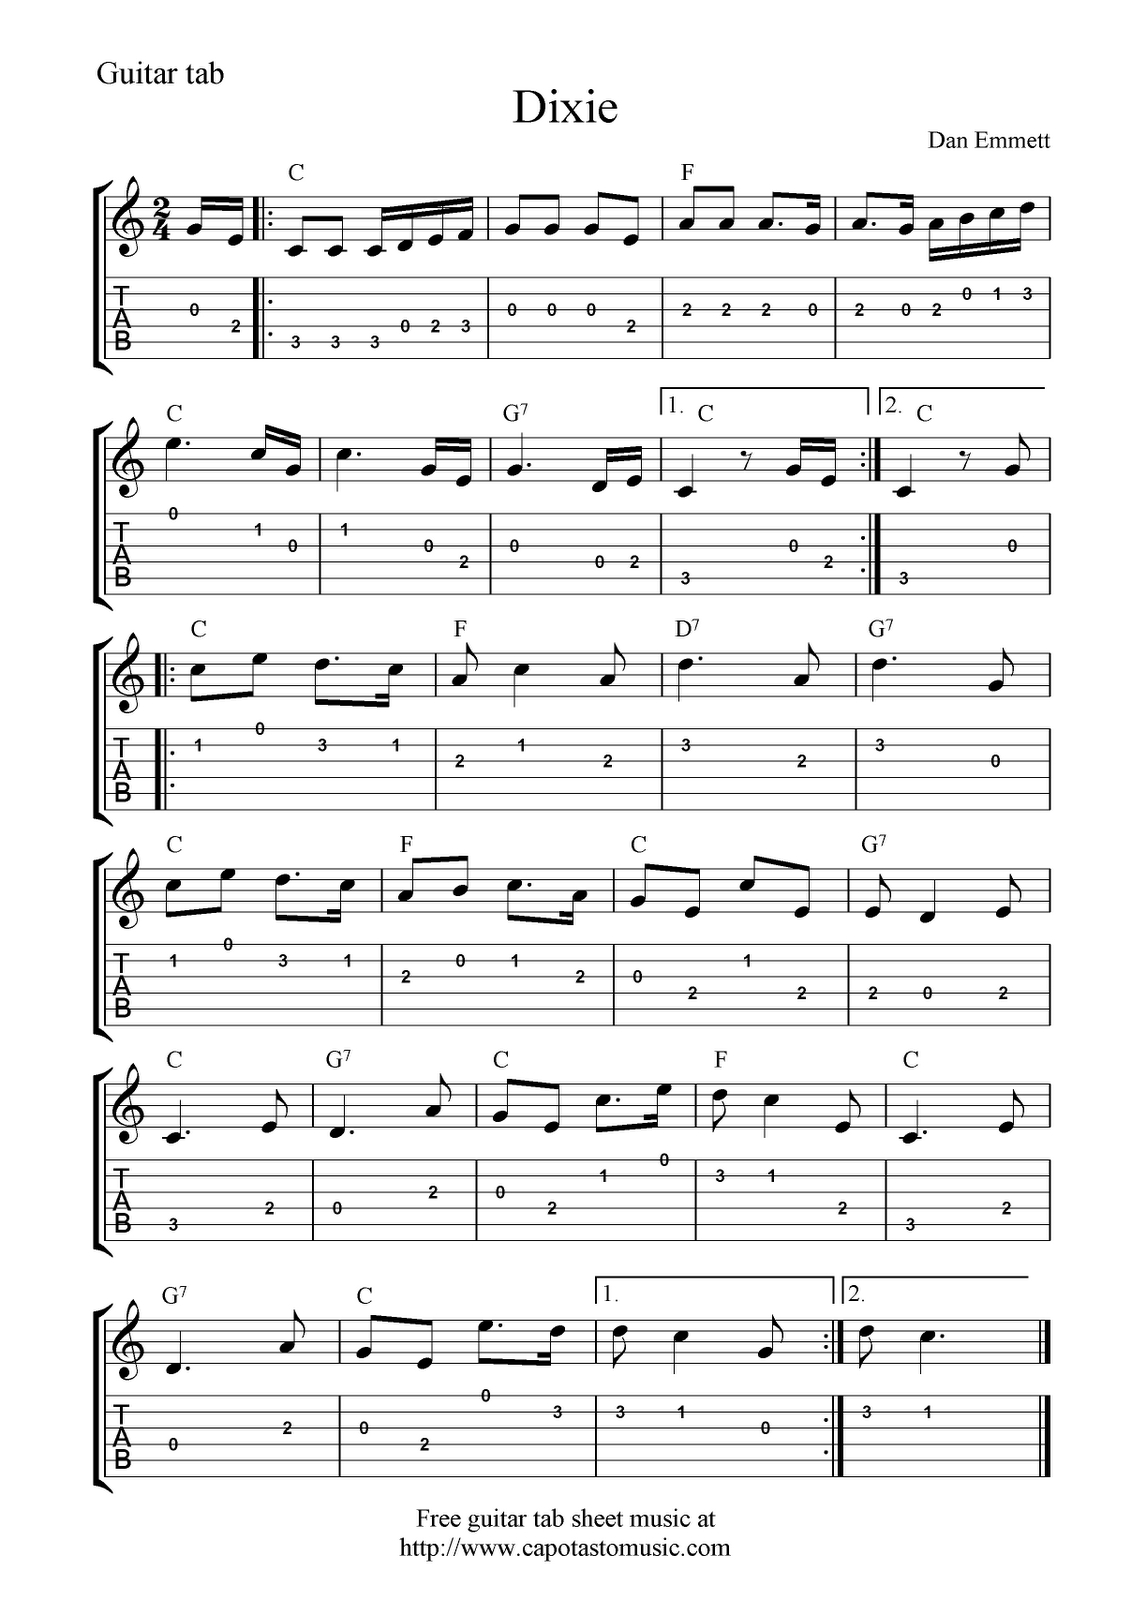 Guitar Music Sheets For Beginners | Free Guitar Tab Sheet Music - Free Guitar Sheet Music For Popular Songs Printable